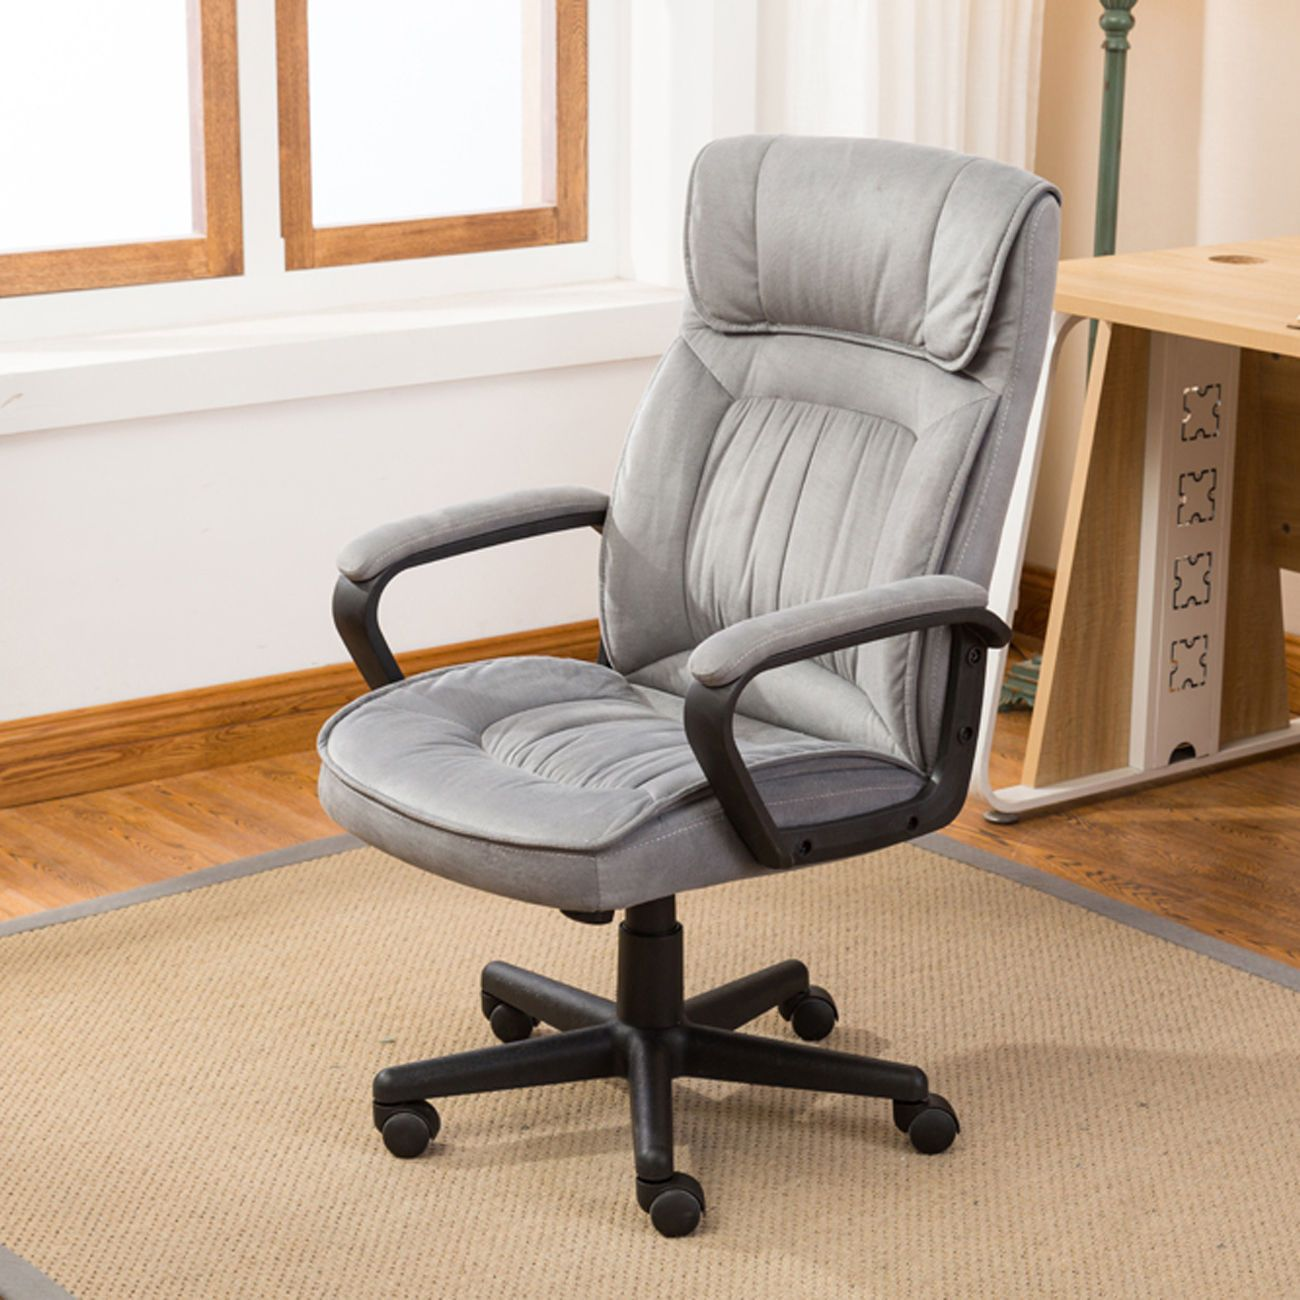 Executive office chair lumber support computer desk padded